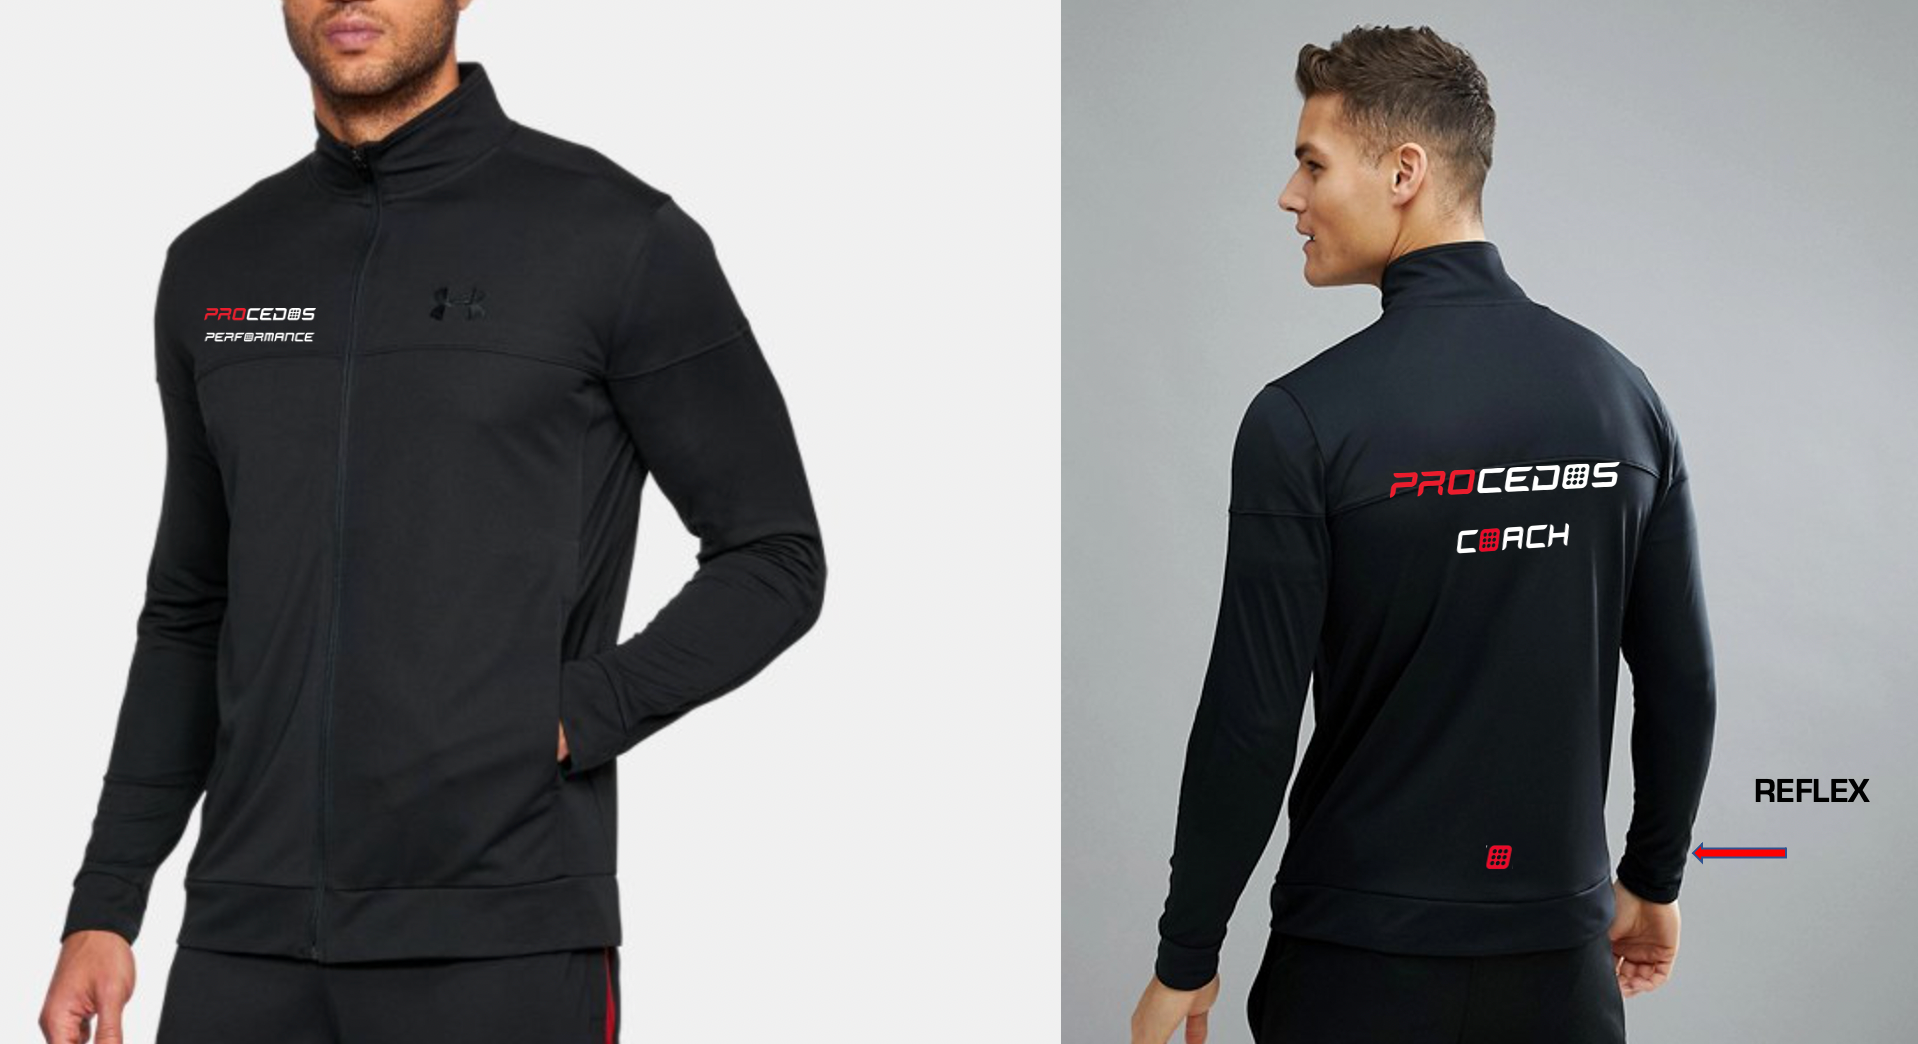 PROCEDOS PERFORMANCE Under Armour Longsleve FULLZIP jacket